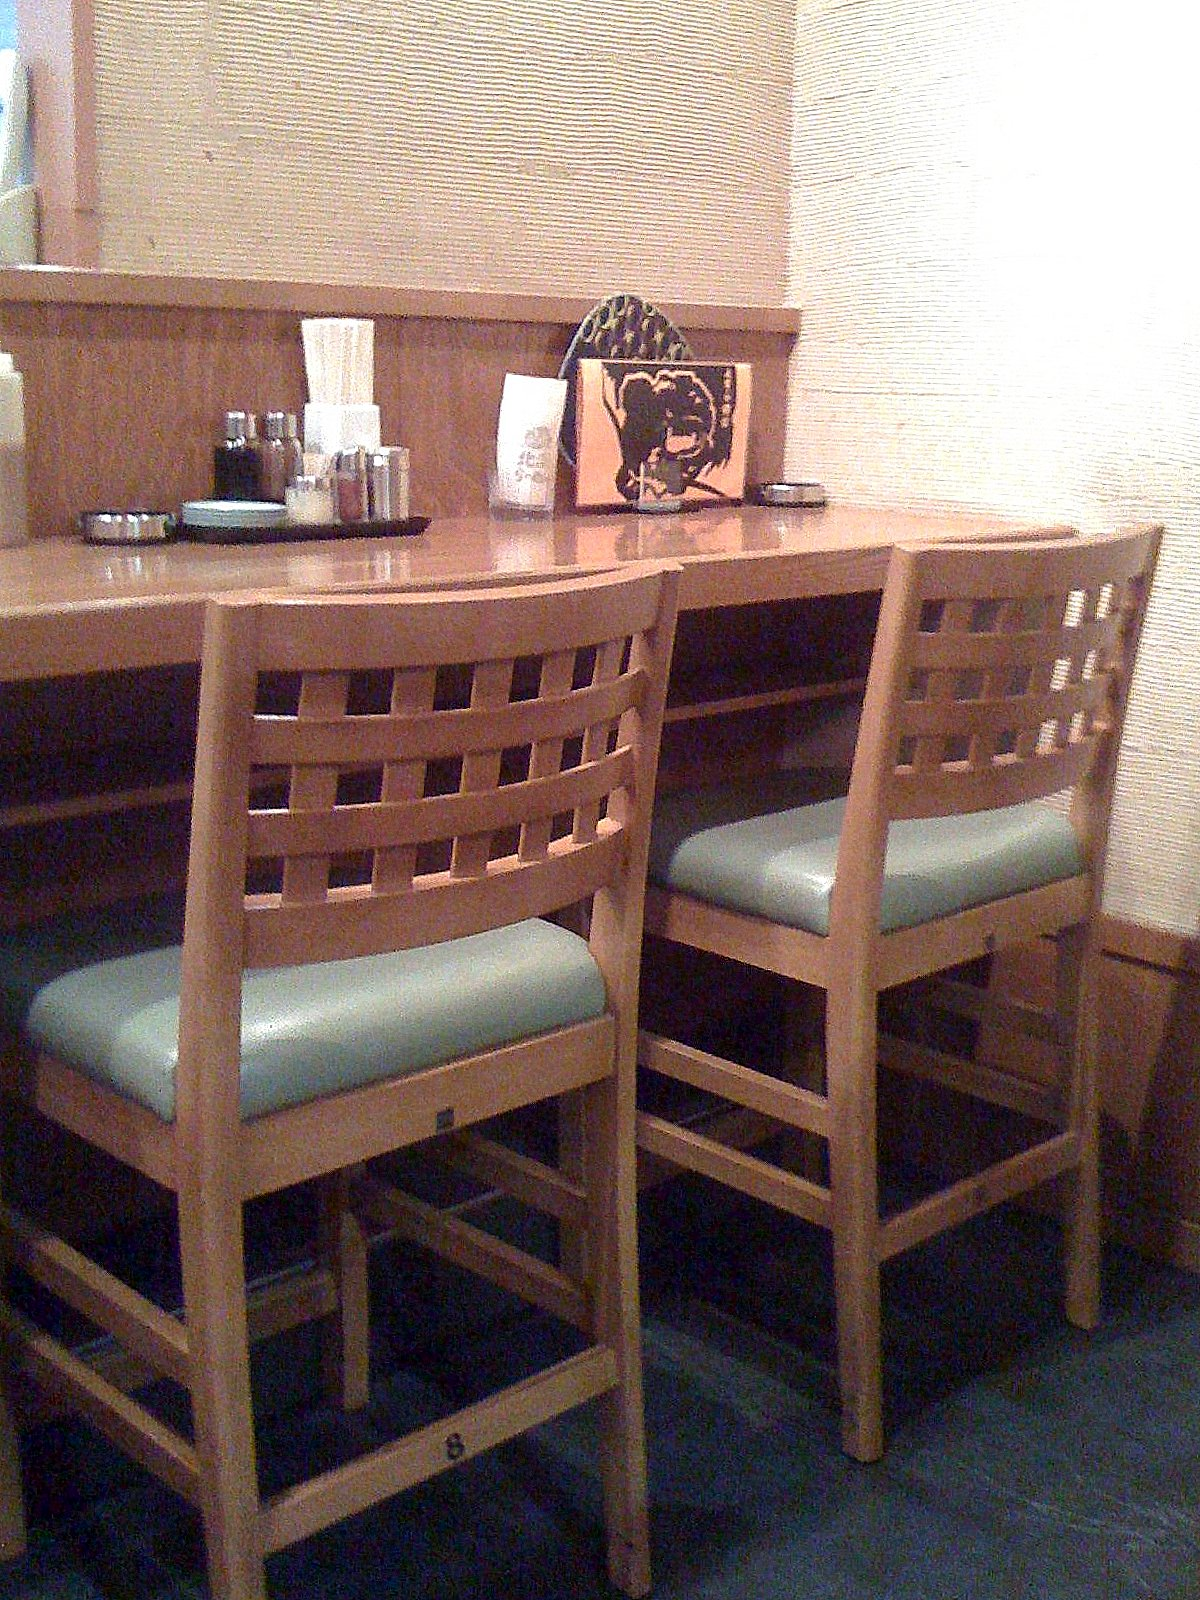 In Order For Japanese Solo Diners To Avoid The Stares And Social  Awkwardness, They Tend To Pick Restaurants Or Cafes With Counter Seats  (implying That This ...